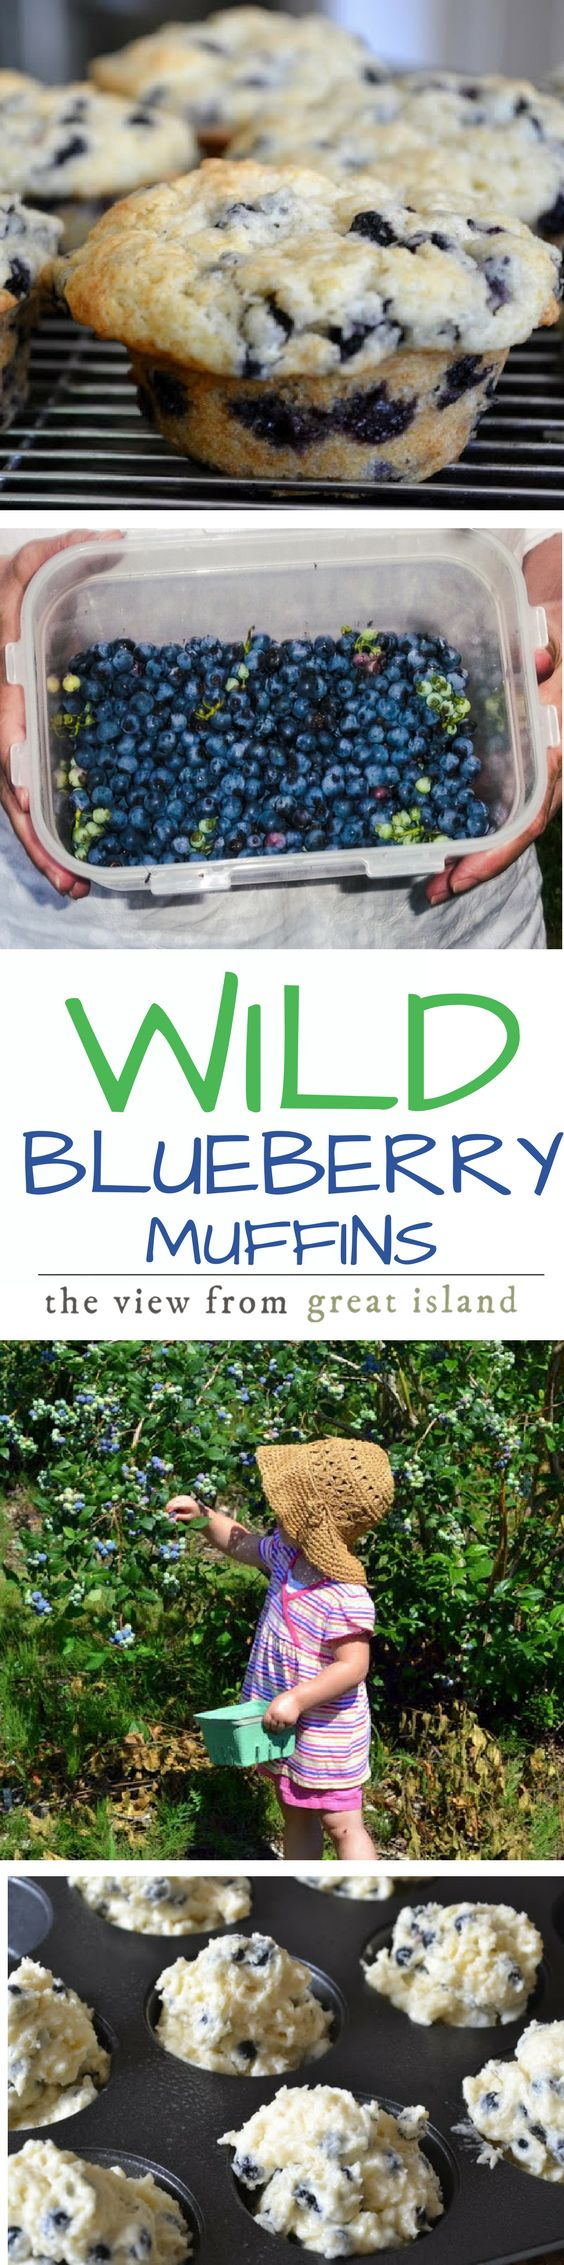 Wild Blueberry Muffins with Key Lime Butter ~ wild blueberries are tastier and healthier than their grocery store cousins ~ and these muffins are the ultimate morning treat!   breakfast  